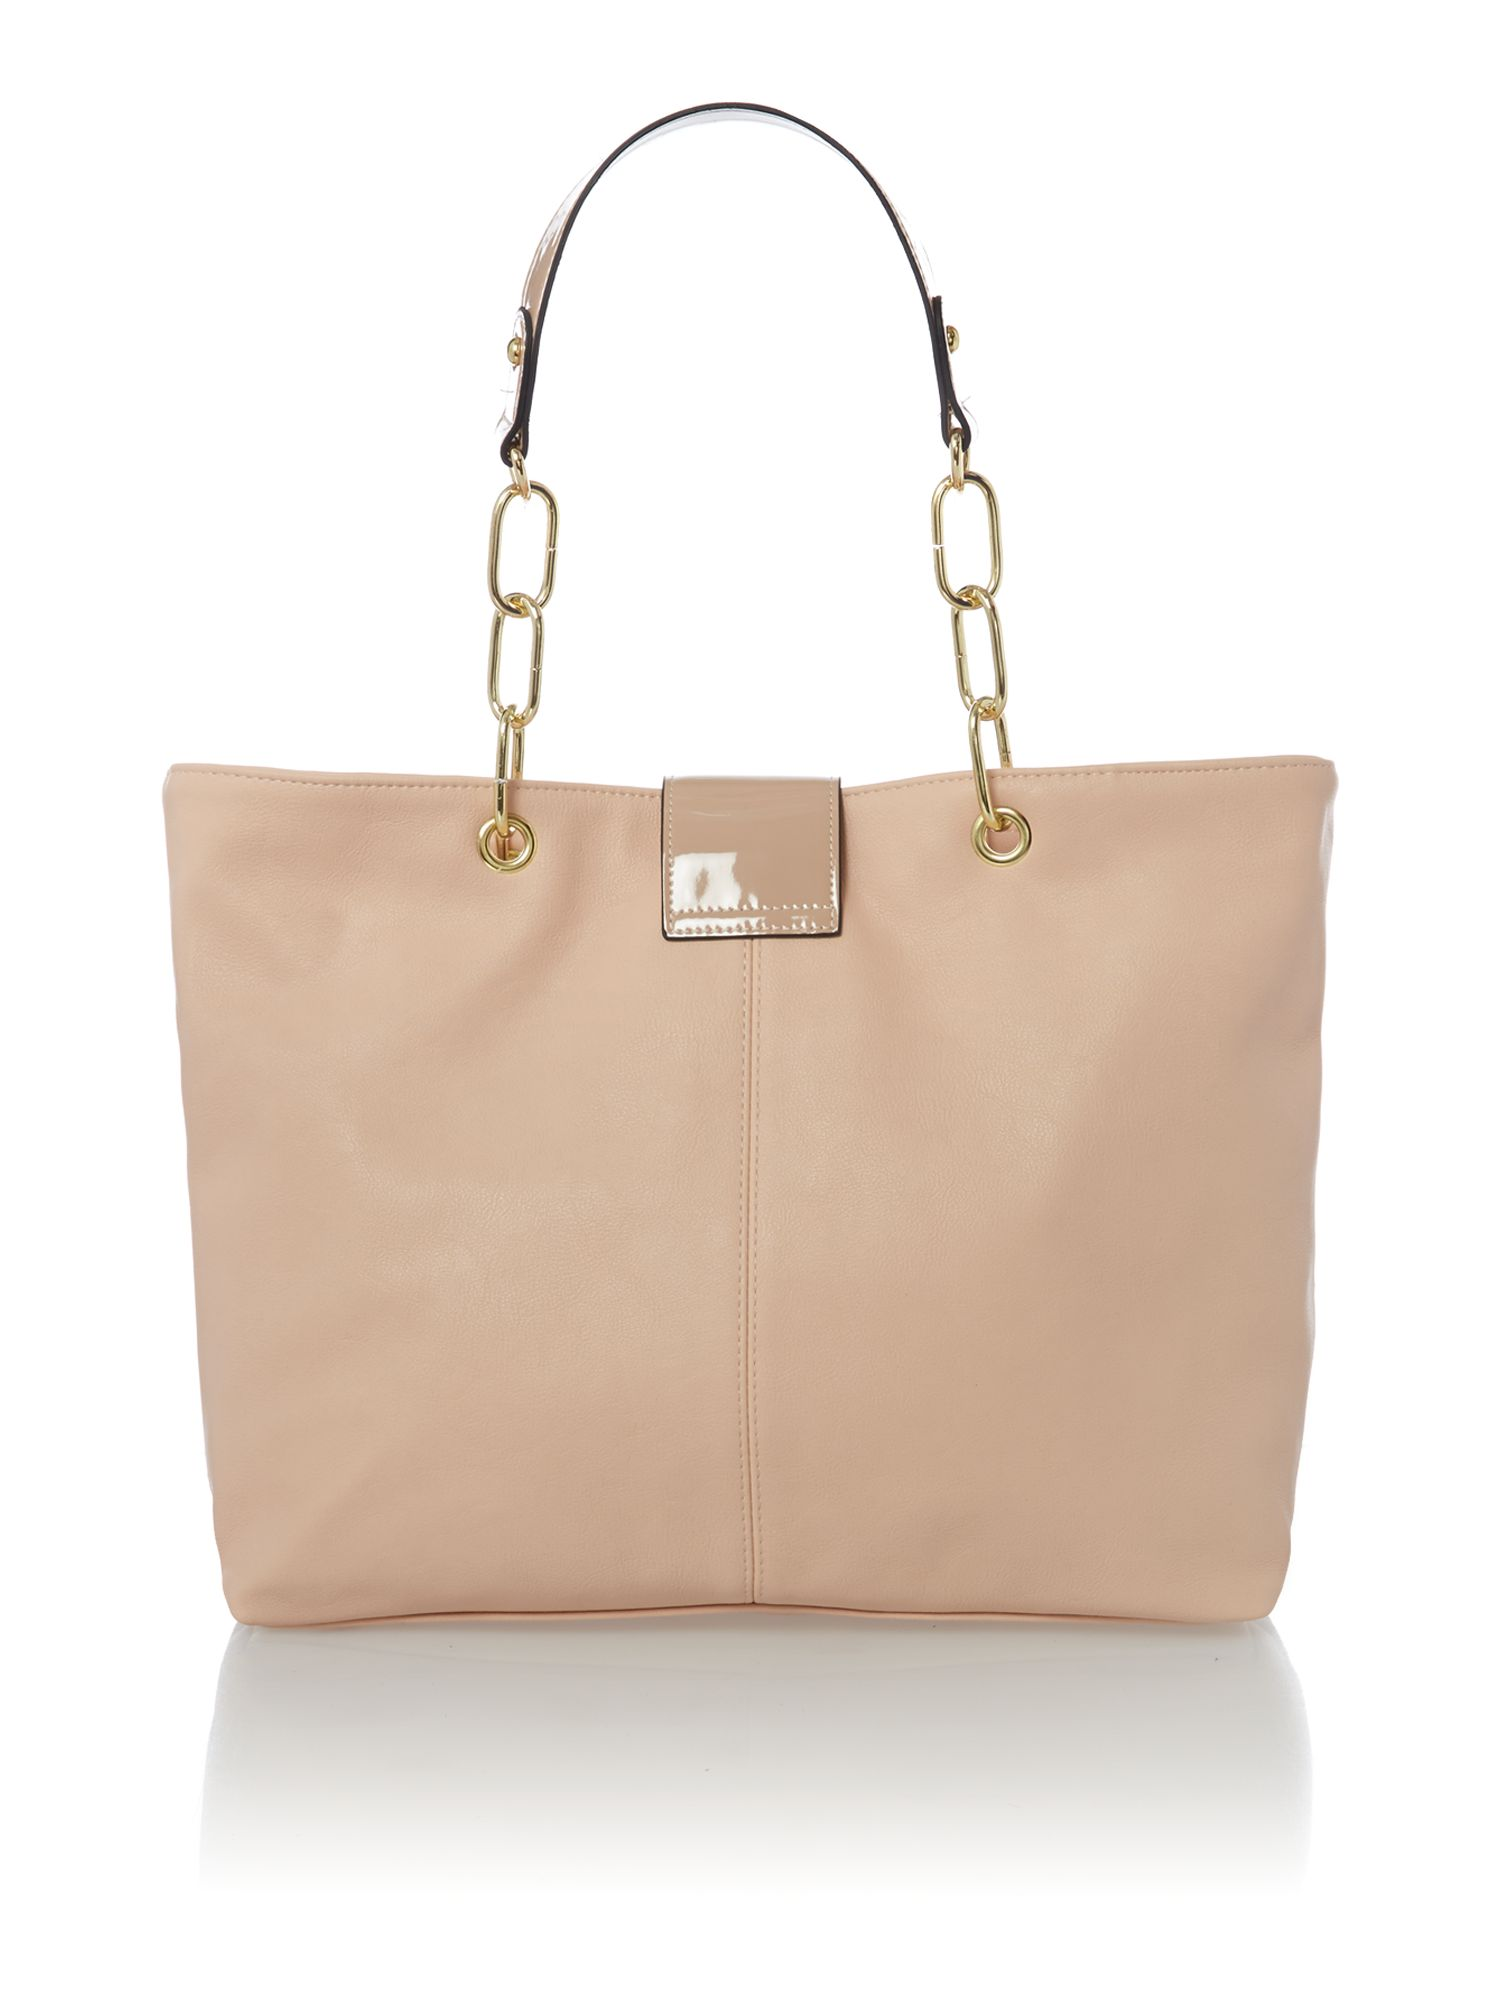 Mindy zip top tote bag